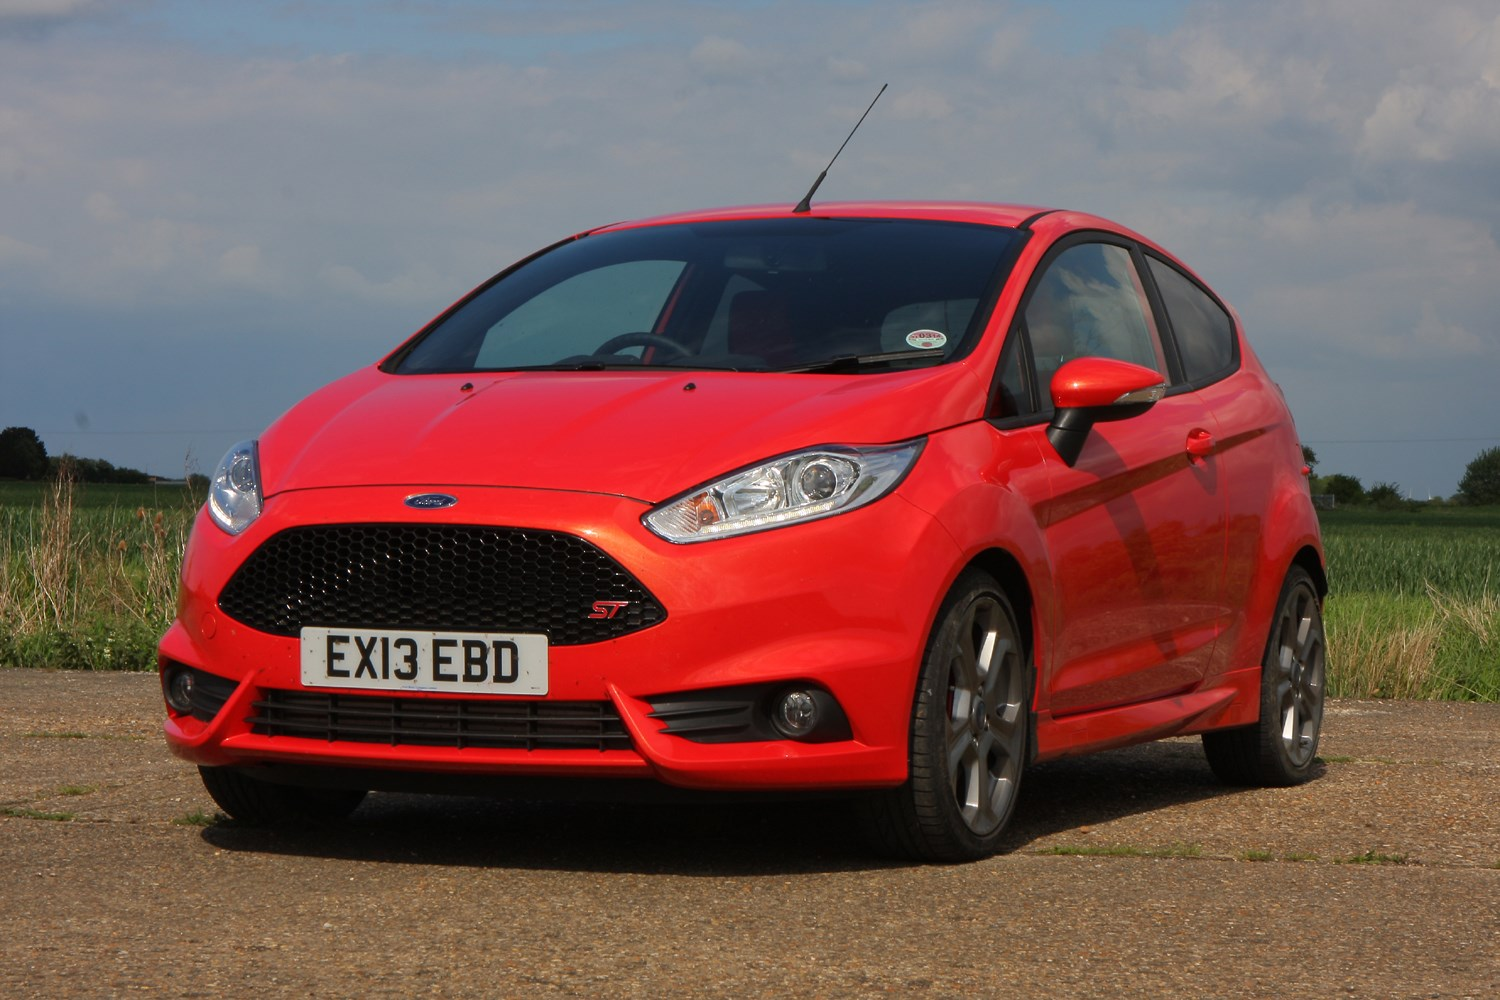 ford fiesta st review 2012 parkers. Cars Review. Best American Auto & Cars Review